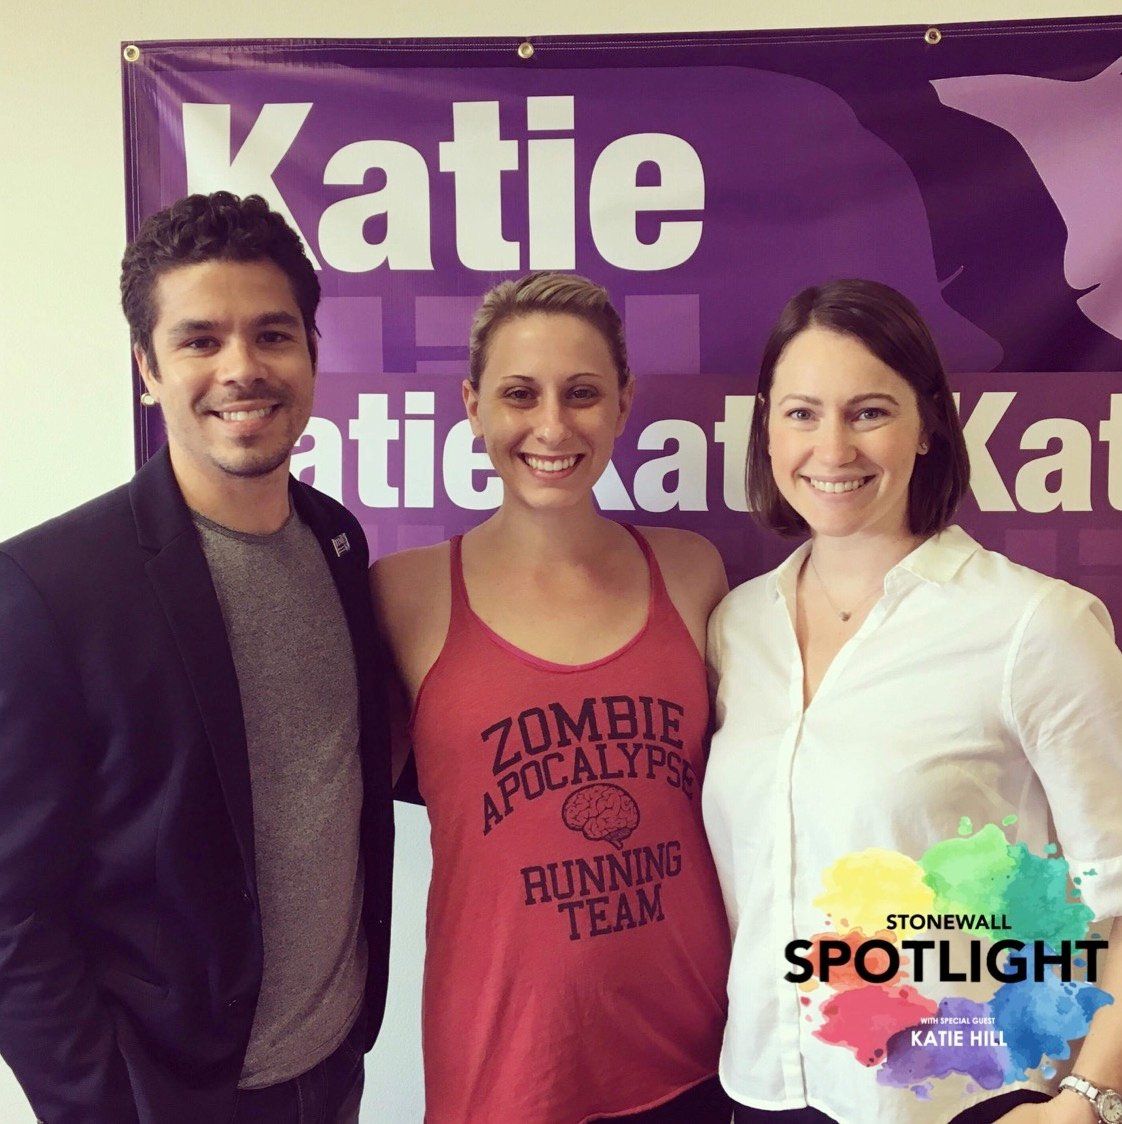 Stonewall Spotlight Hosts Mackenzie Hussman and Marcus Lovingood with Katie Hill, Stonewall's endorsed candidate for Congressional District 25